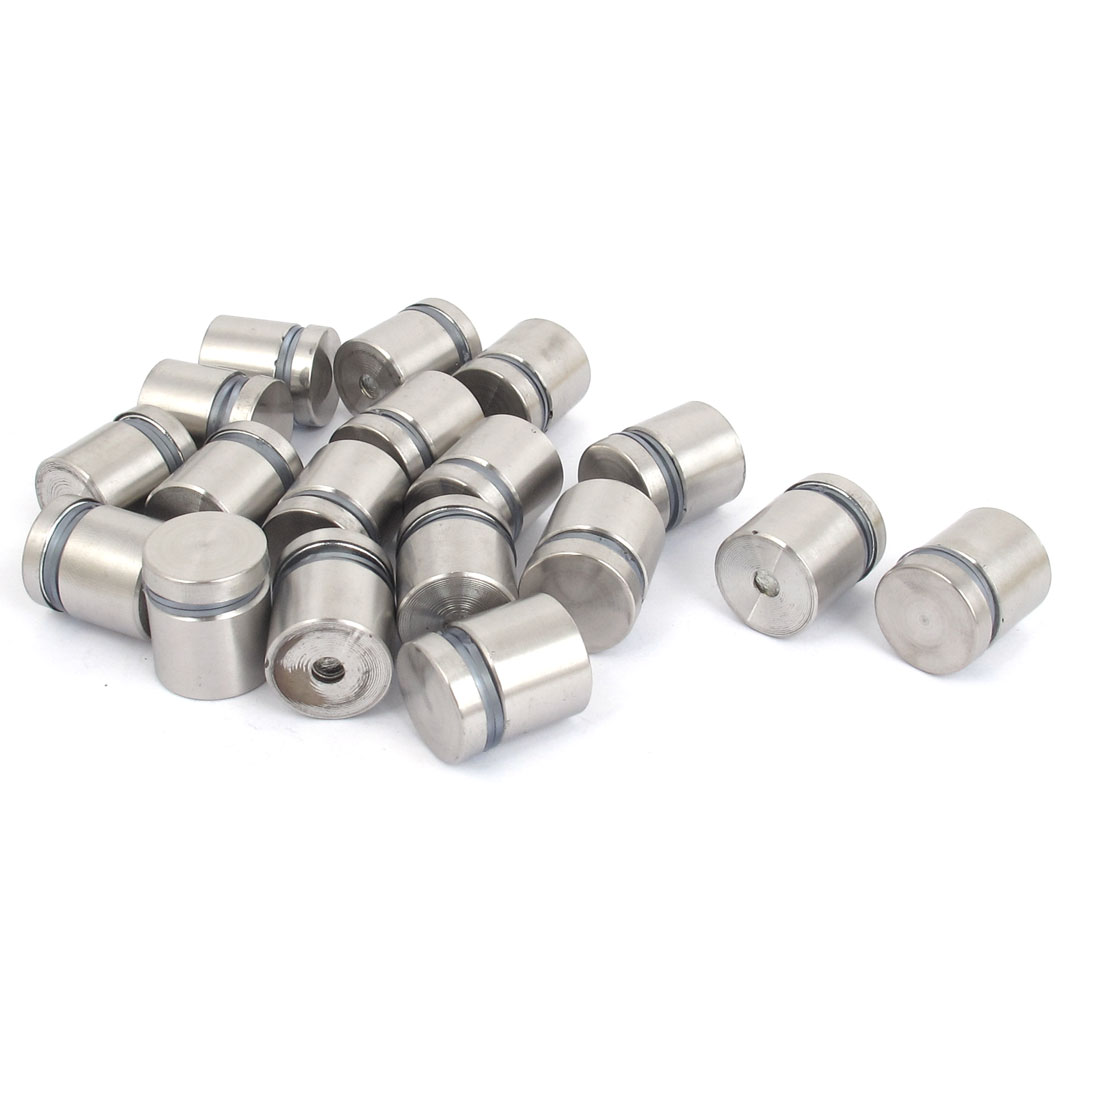 19mm x 20mm Stainless Steel Advertising Frameless Glass Standoff Pins 18pcs